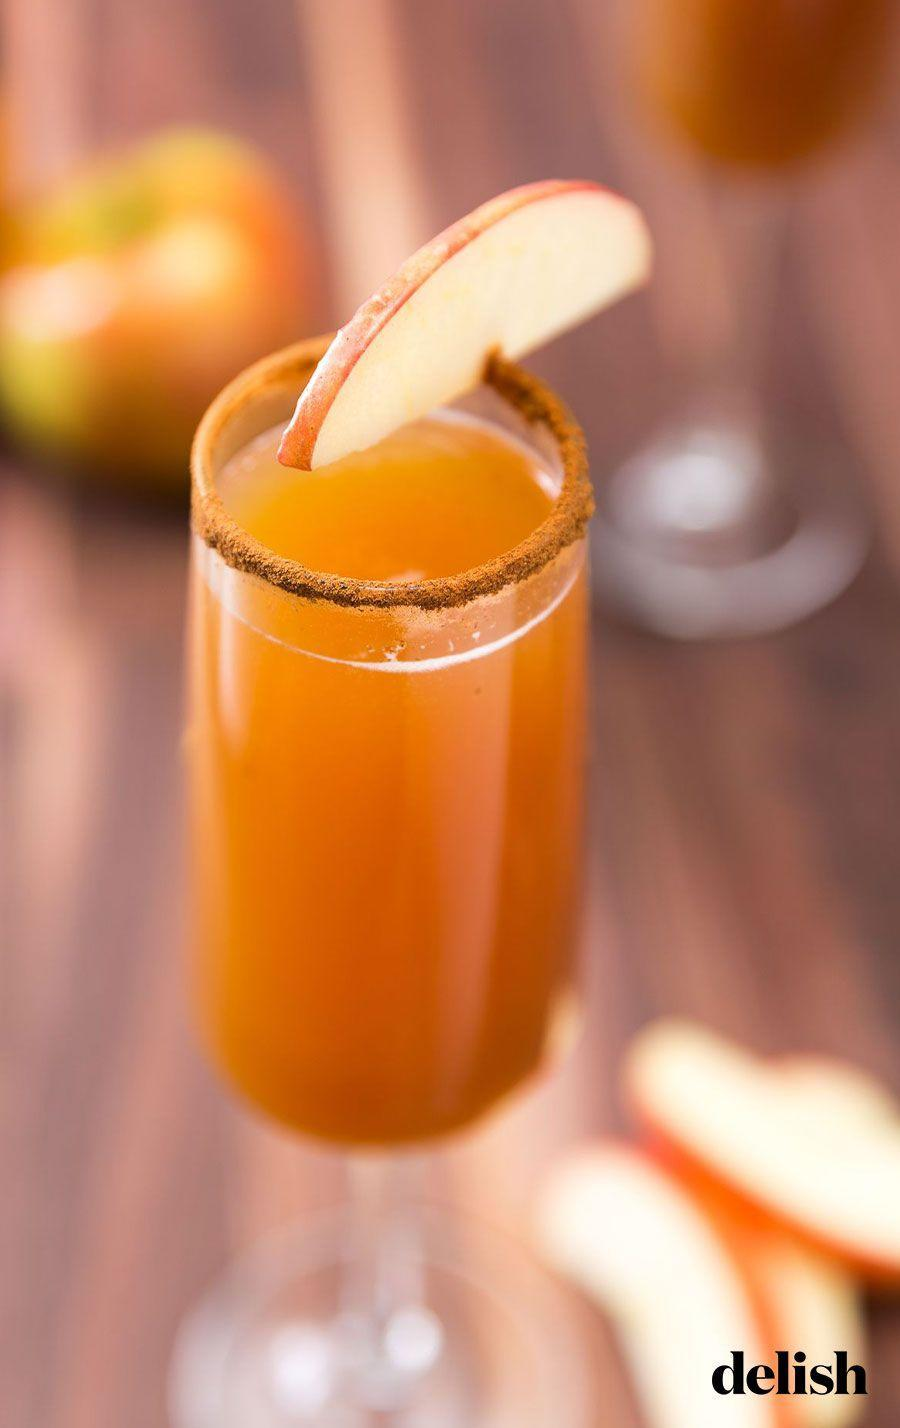 "<p>Switch up your mimosa game with this apple cider version. </p><p>Get the recipe from<a href=""https://www.delish.com/cooking/recipe-ideas/recipes/a46963/apple-cider-mimosas-recipe/"" rel=""nofollow noopener"" target=""_blank"" data-ylk=""slk:Delish"" class=""link rapid-noclick-resp"">Delish</a>.</p>"